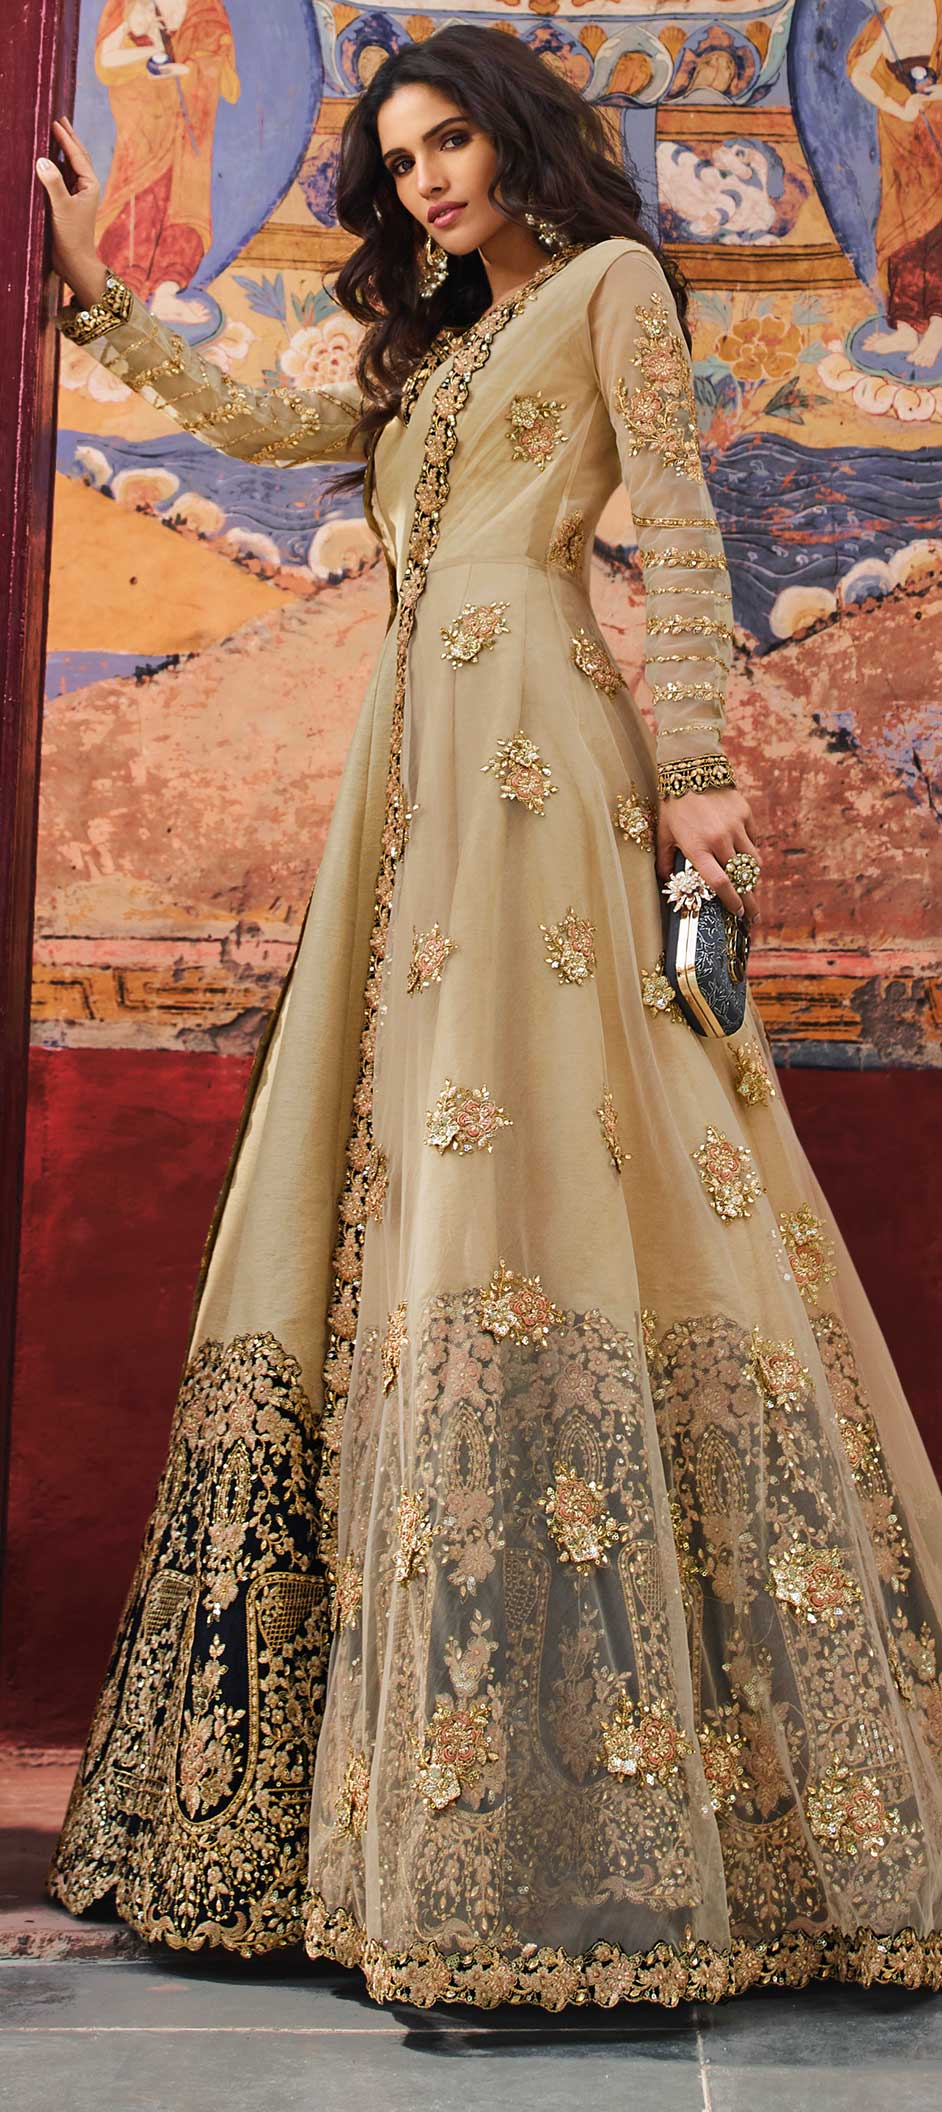 Net Bollywood Salwar Kameez in Beige and Brown with Moti work